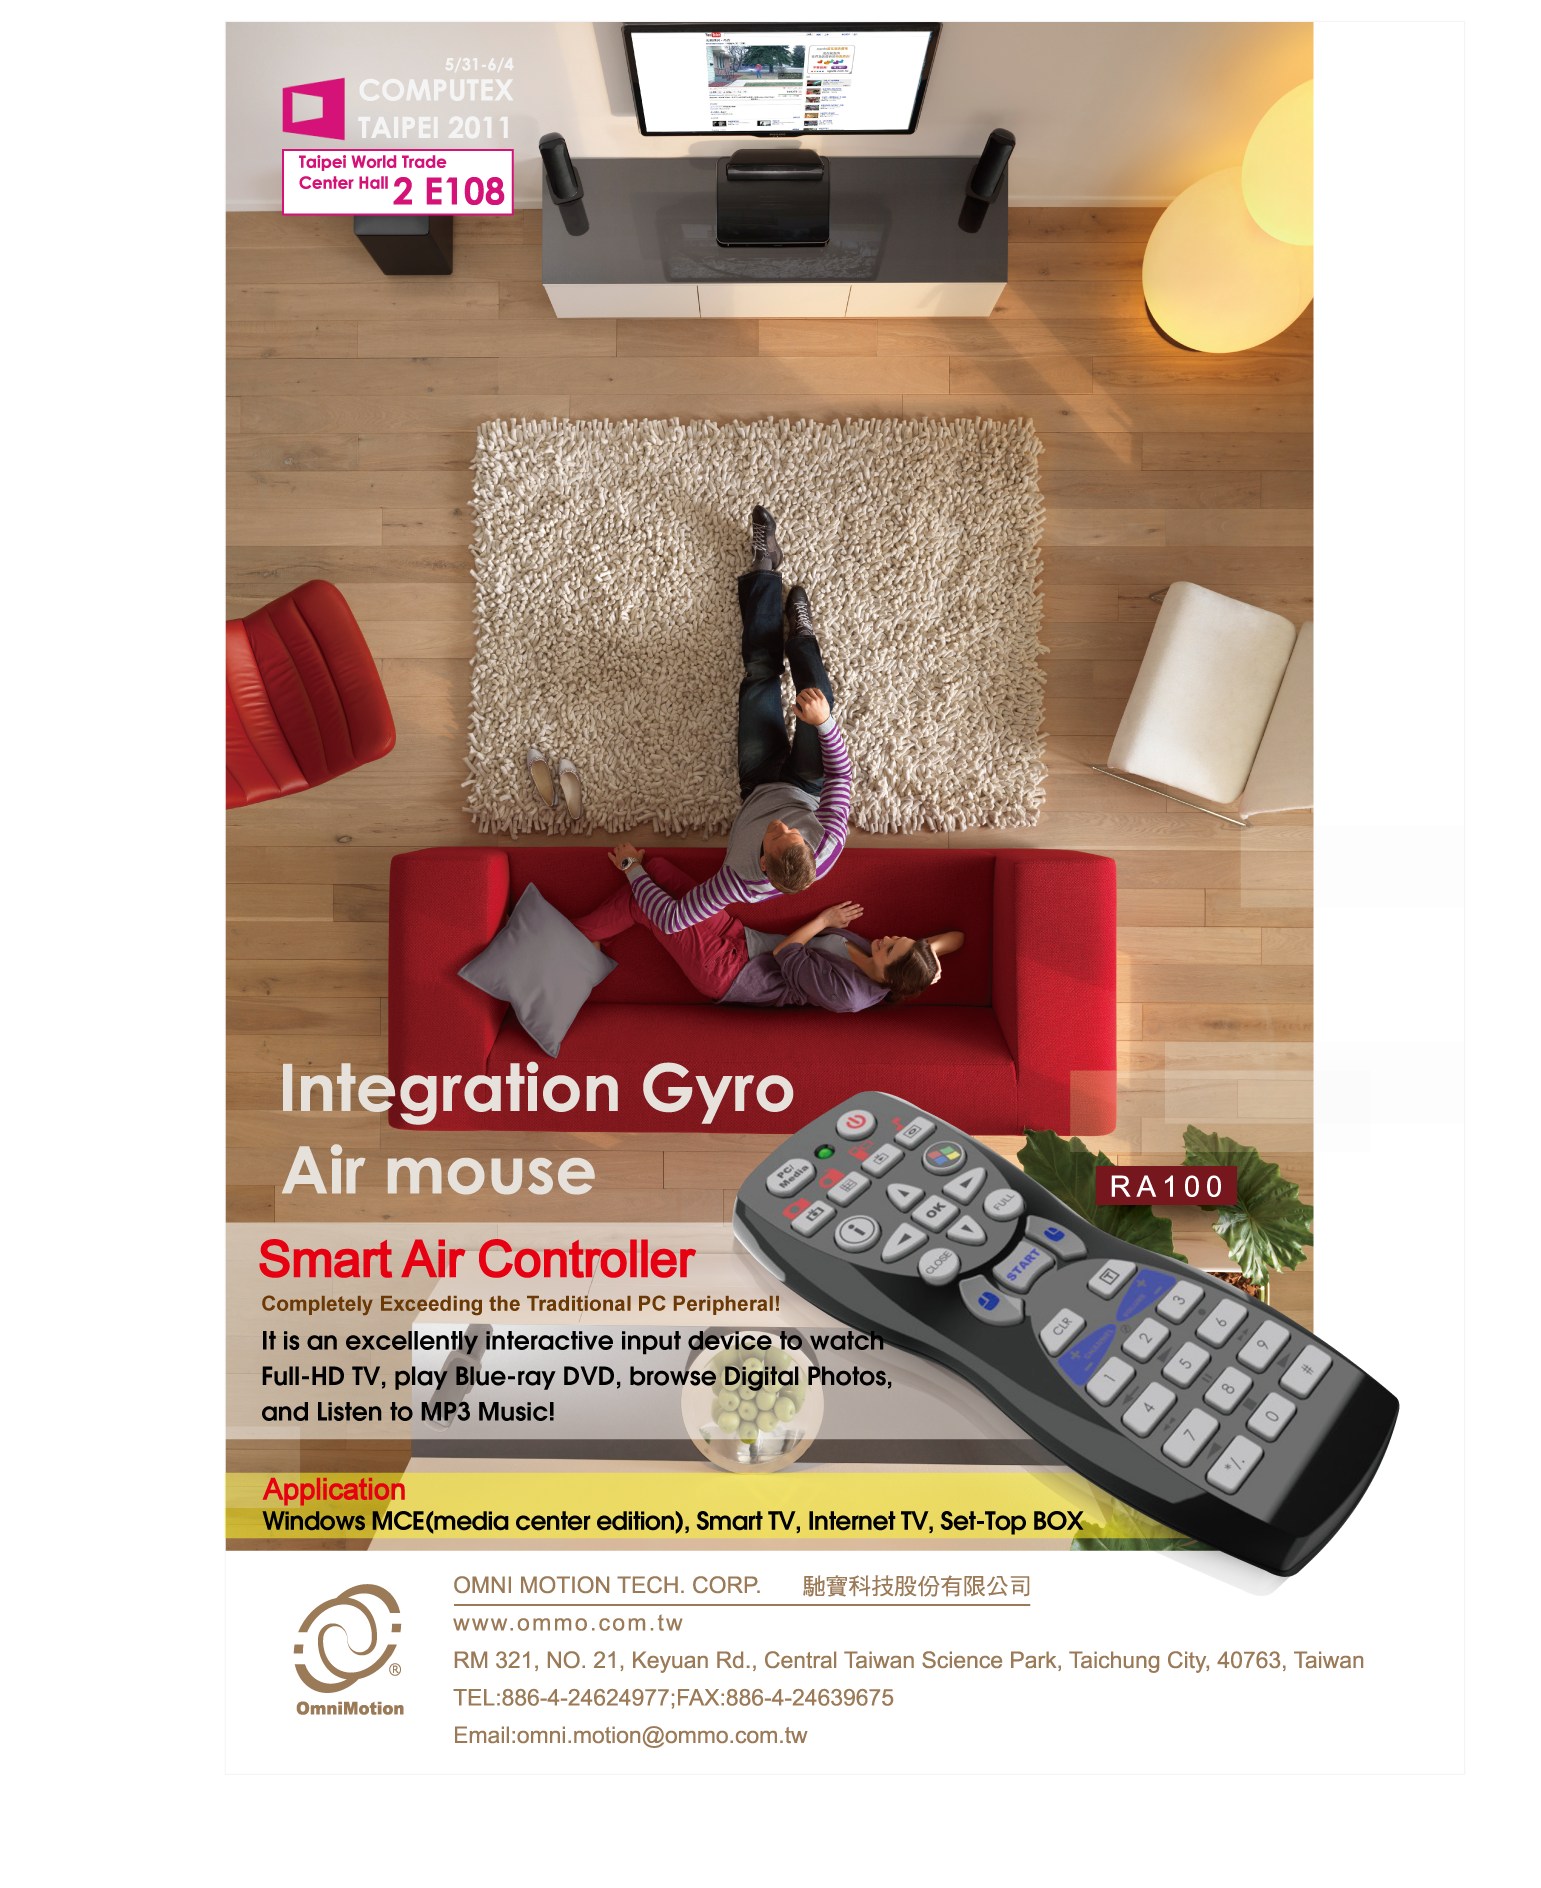 Omni Motion Technology Corporations On Taiwans Largest Ict B2b Air Mouse Keyboard Gyroscope For Smart Tv Integration Gyro Minimum Order Quantity Under 1000 Are Samples Available This Product No